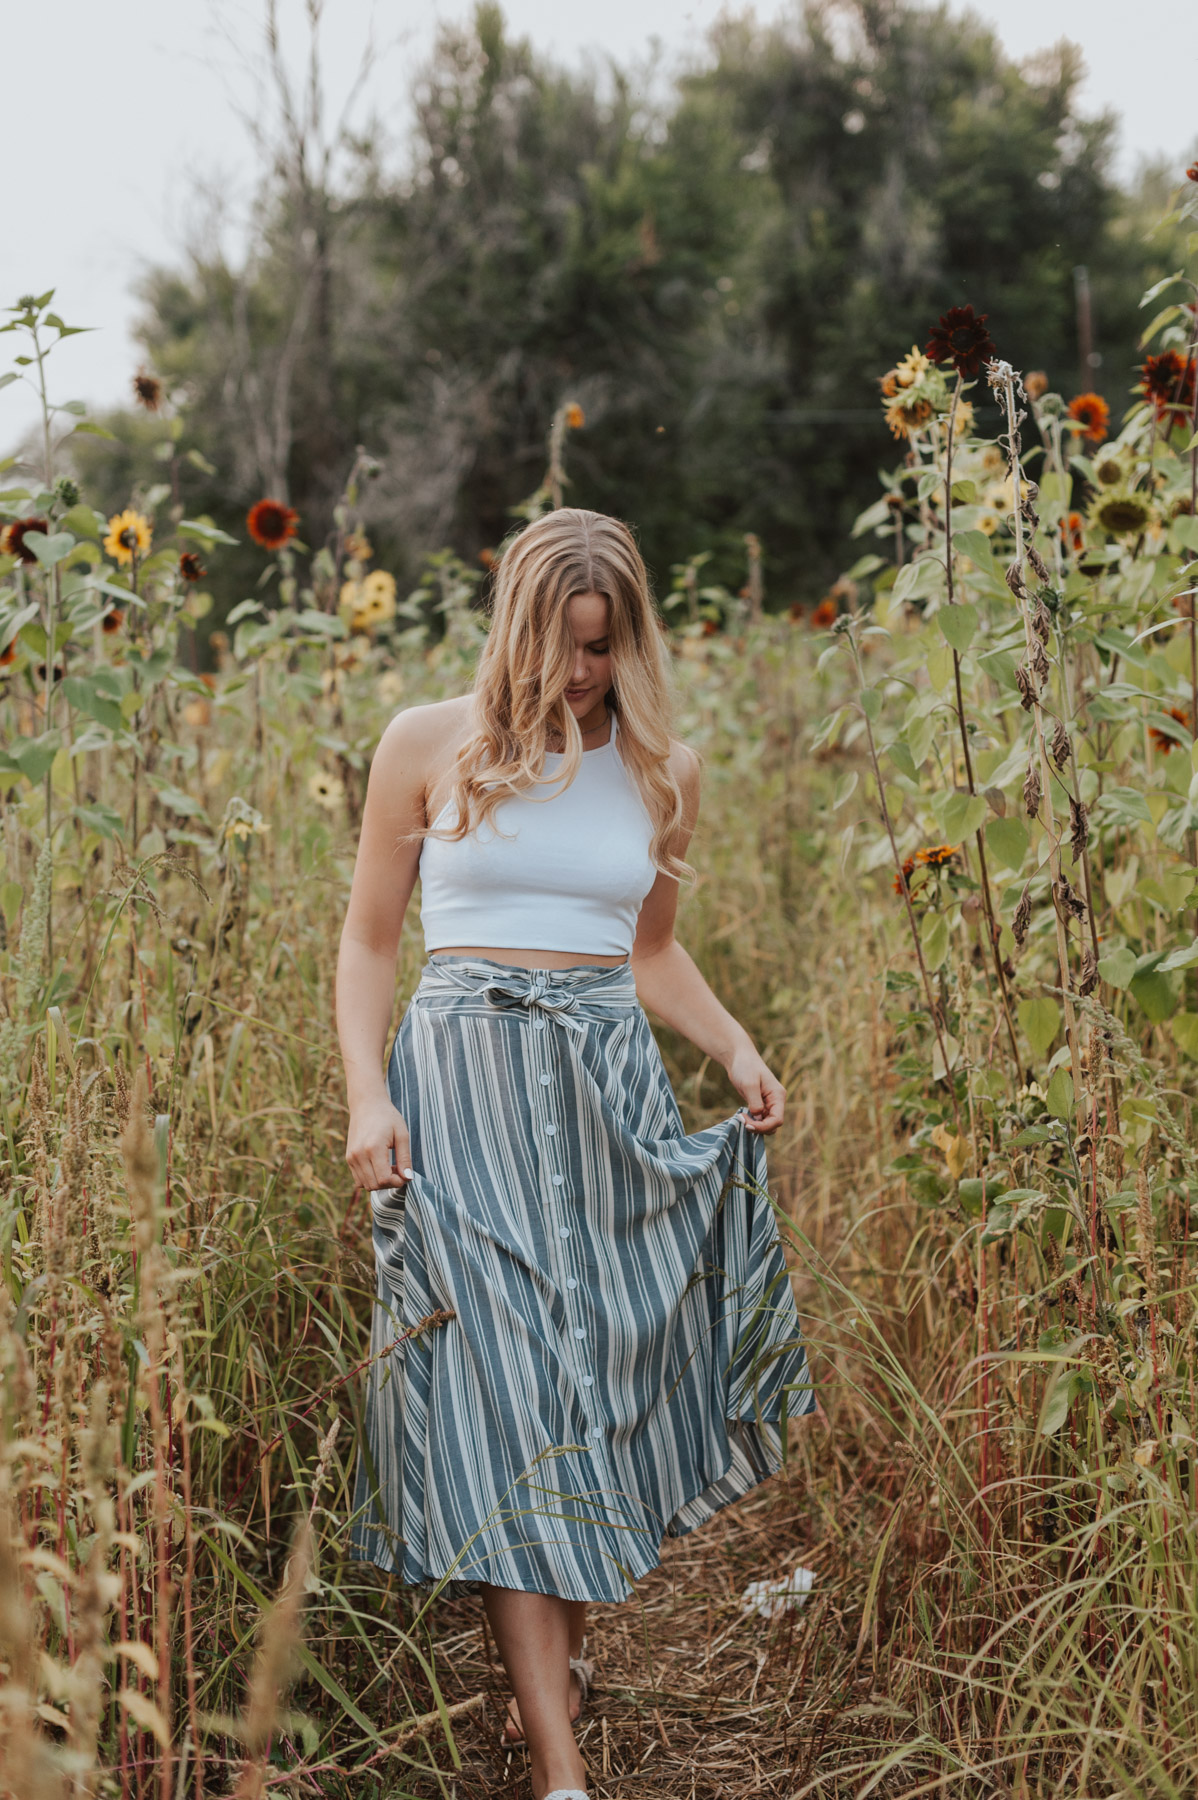 greeley colorado senior photos with sincerely jules studio and emma 2019 senior fort collins senior photos